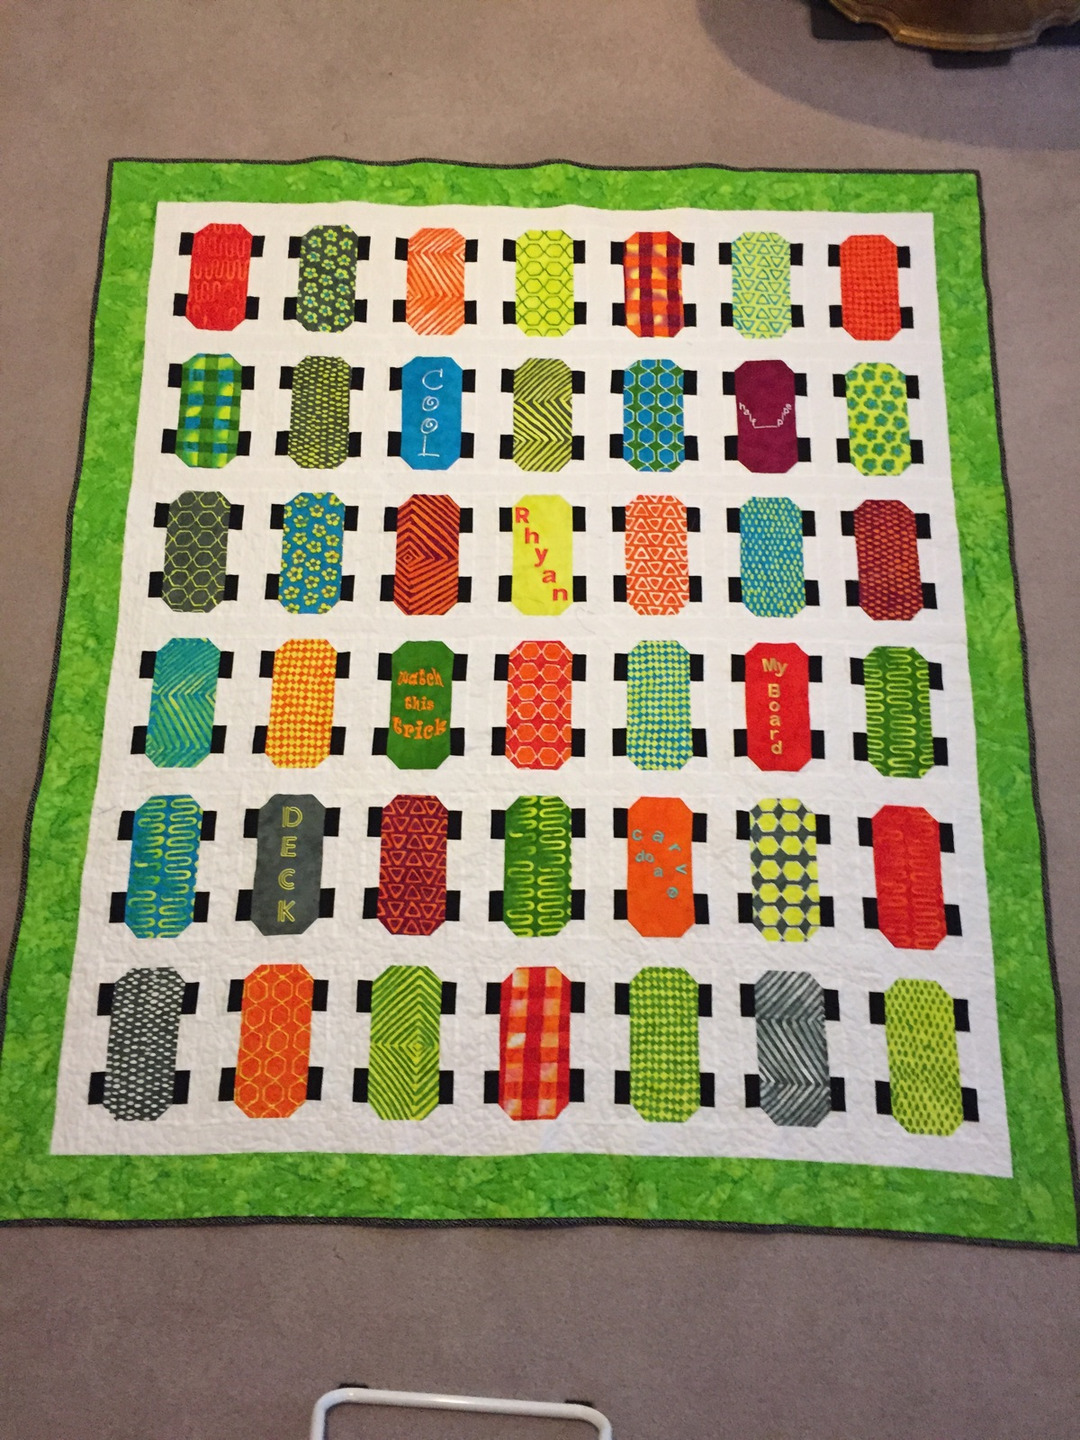 backporchquilts (@backporchquilts) Cover Image